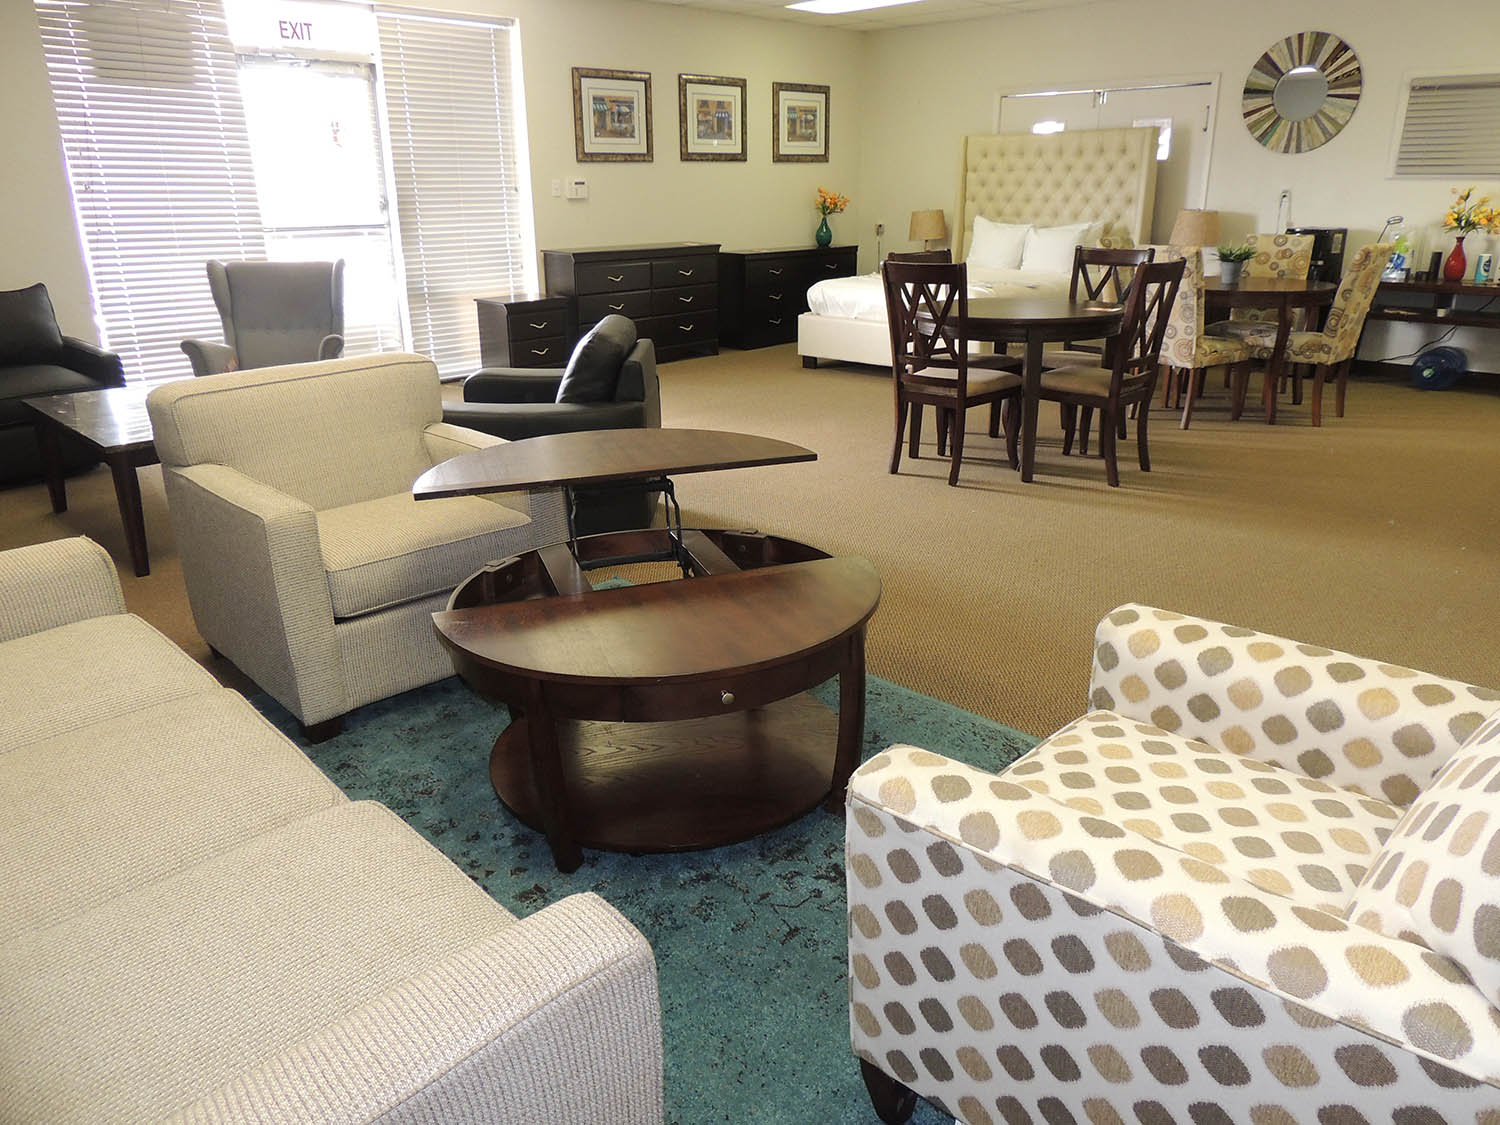 Clearance Furniture for Sale from Furniture Options